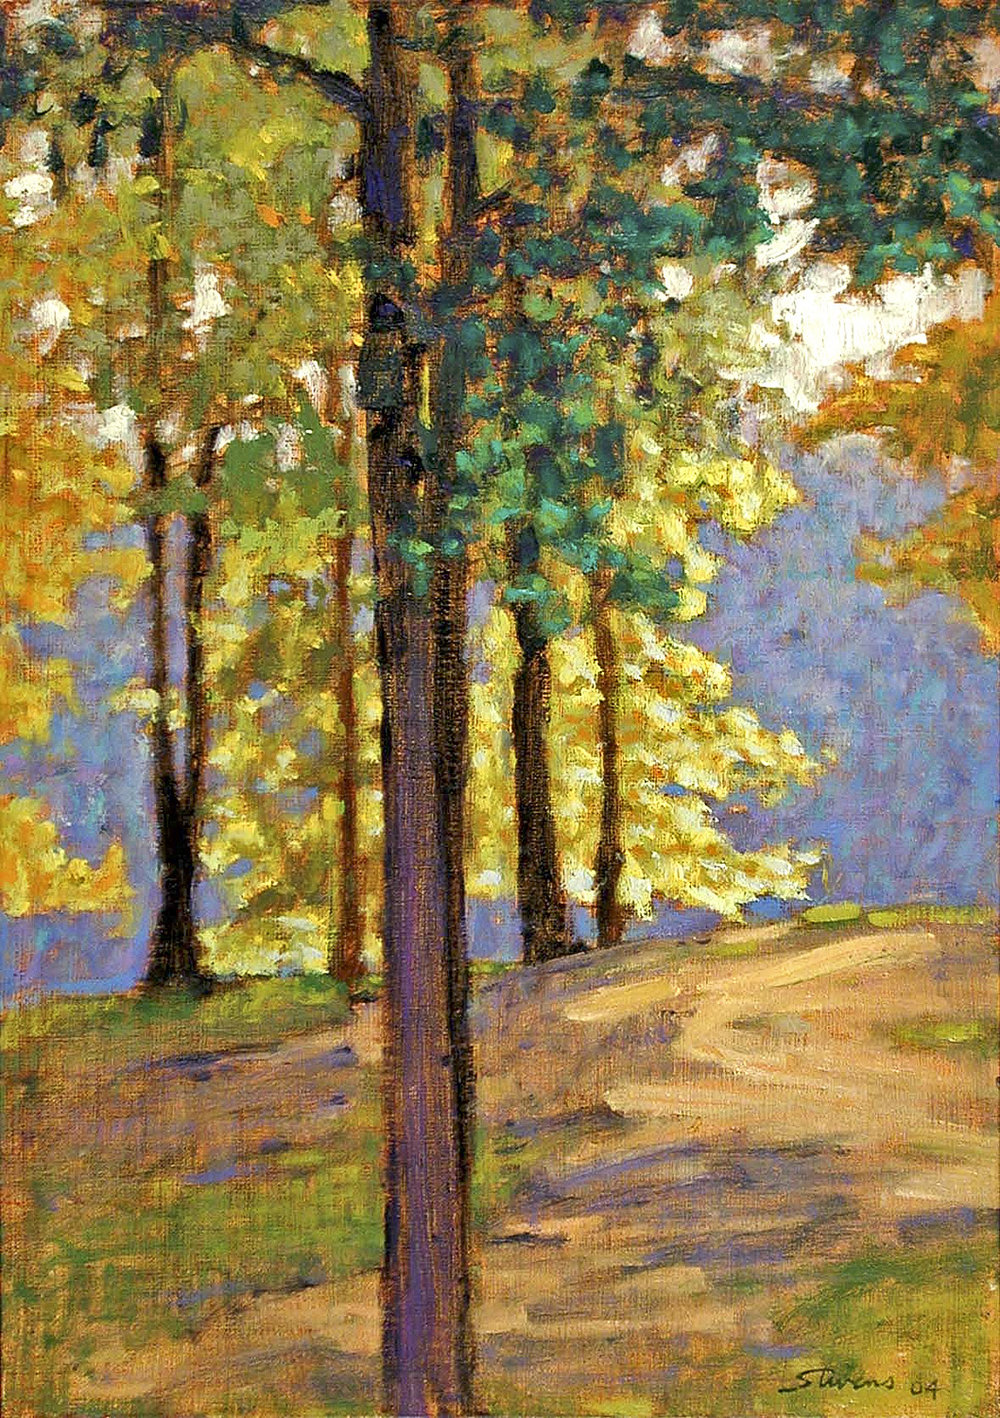 Near the Lake  | oil on linen | 17 x 12"